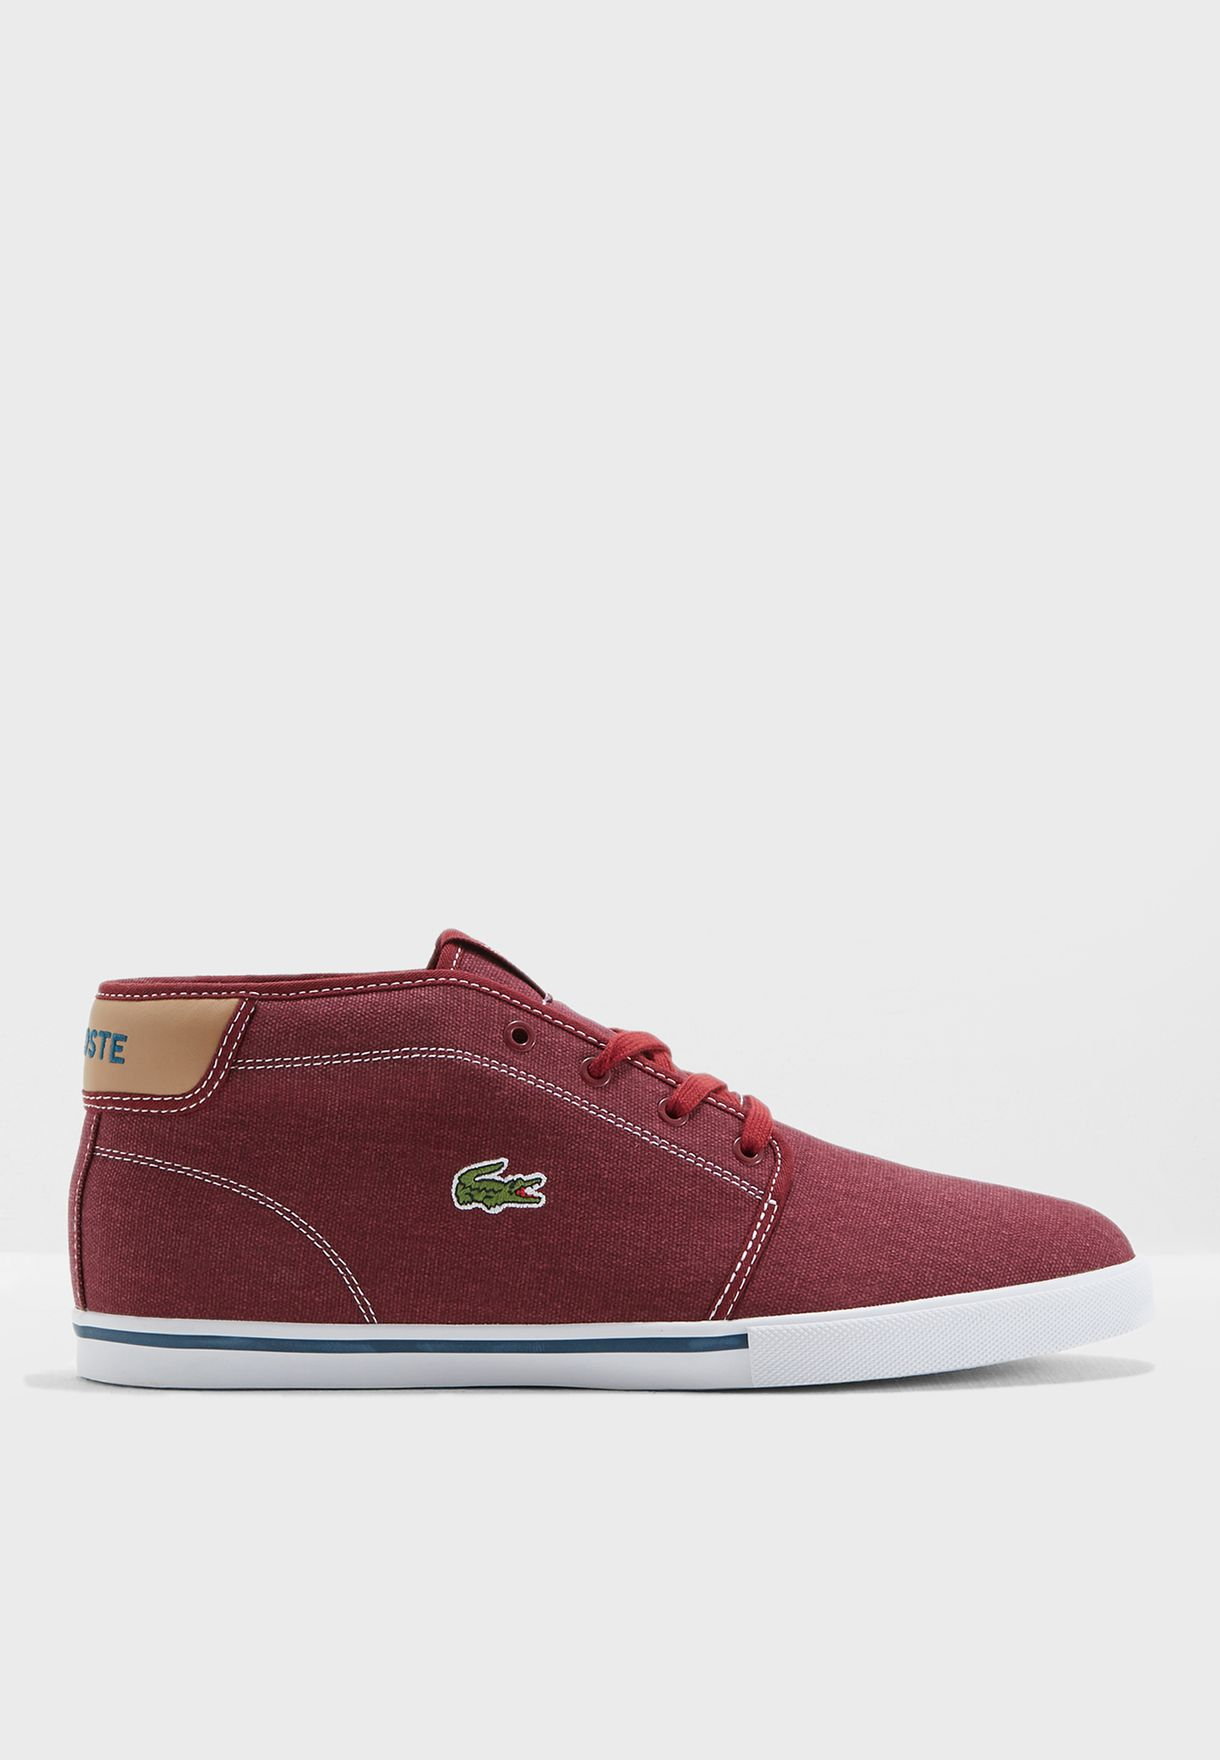 6d4b40d6c Shop Lacoste red Ampthill Sneakers 35CAM0001-RD3 for Men in UAE ...